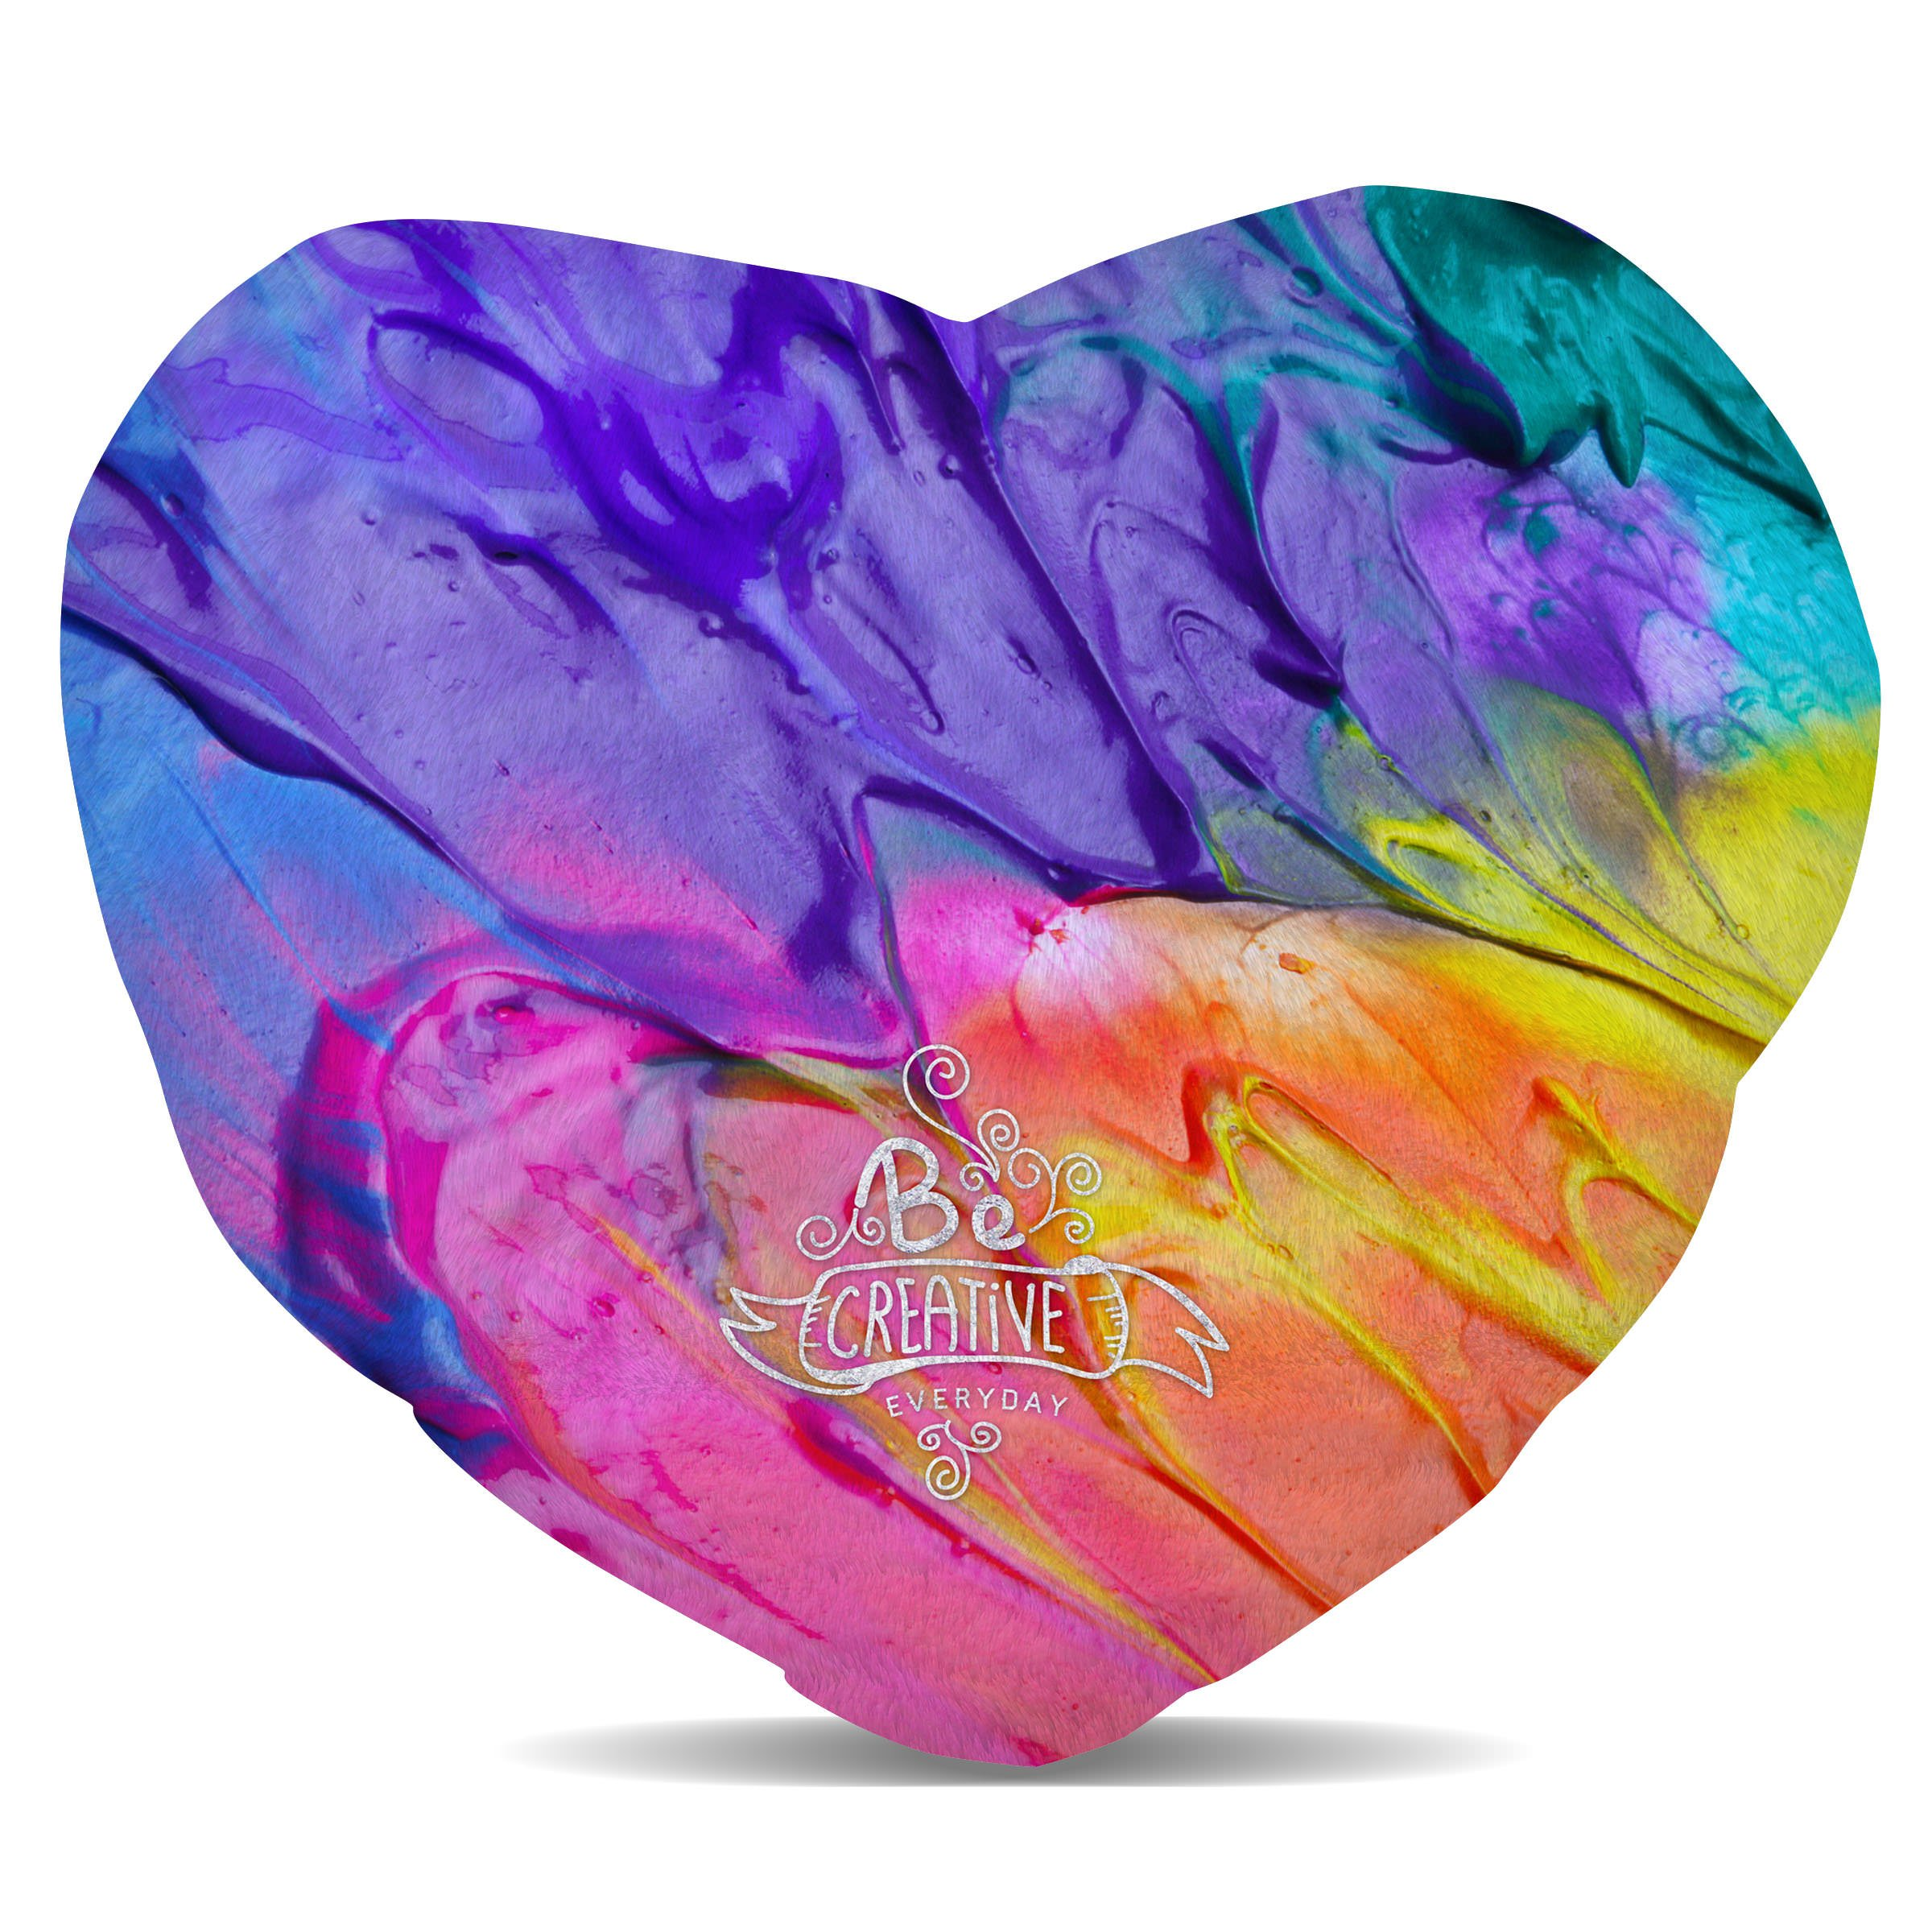 Queen of Cases Be Creative Every Day Fleece Cushion - Heart Cushion - 16in by Queen of Cases (Image #1)